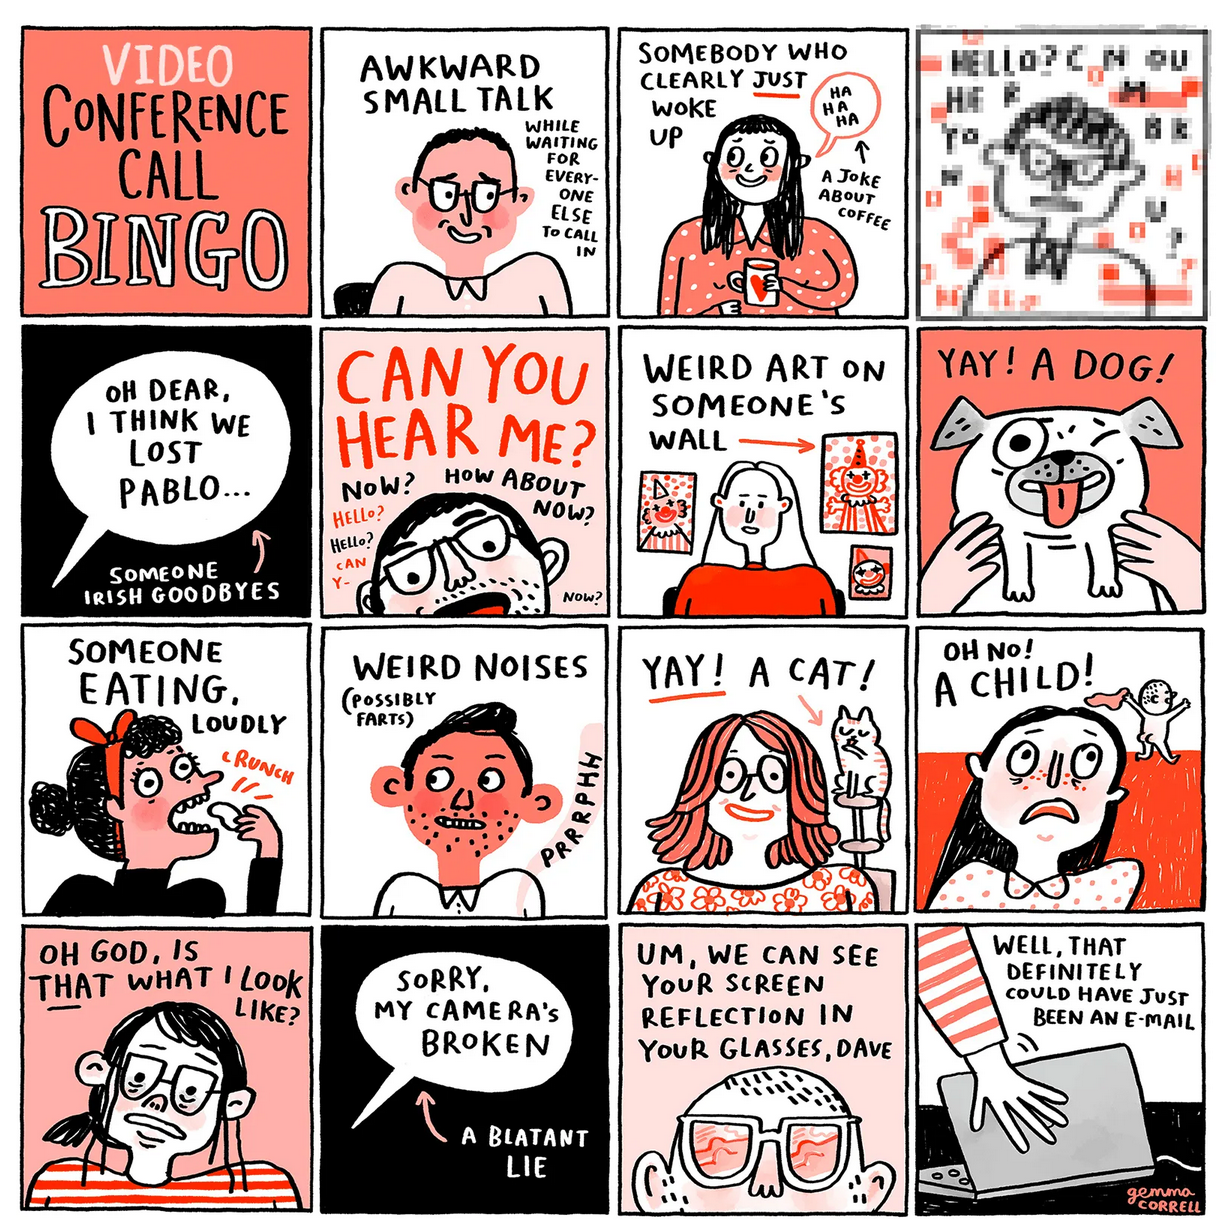 Video Conference Call Bingo - The Nib - Medium